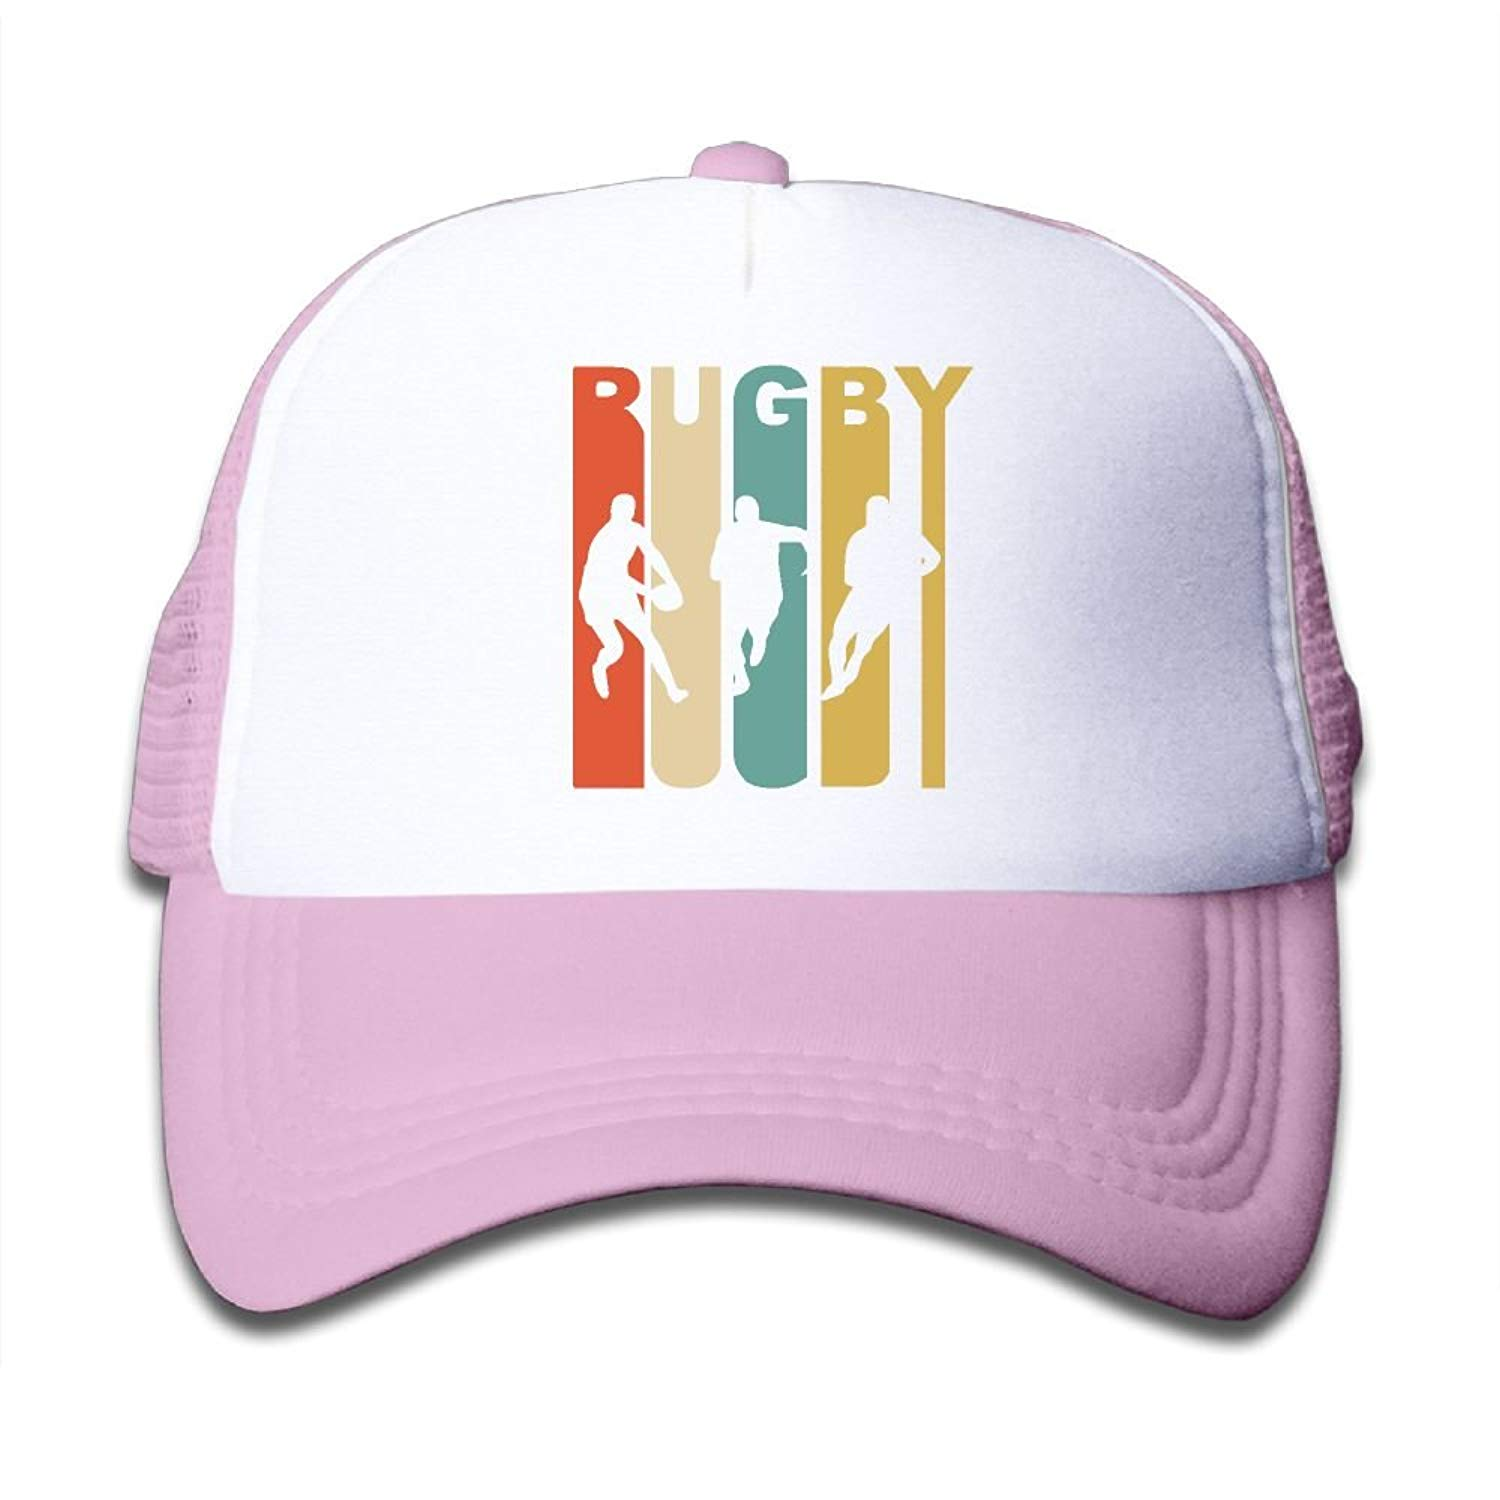 ed3b9979095 Get Quotations · Retro Rugby On Children s Trucker Hat